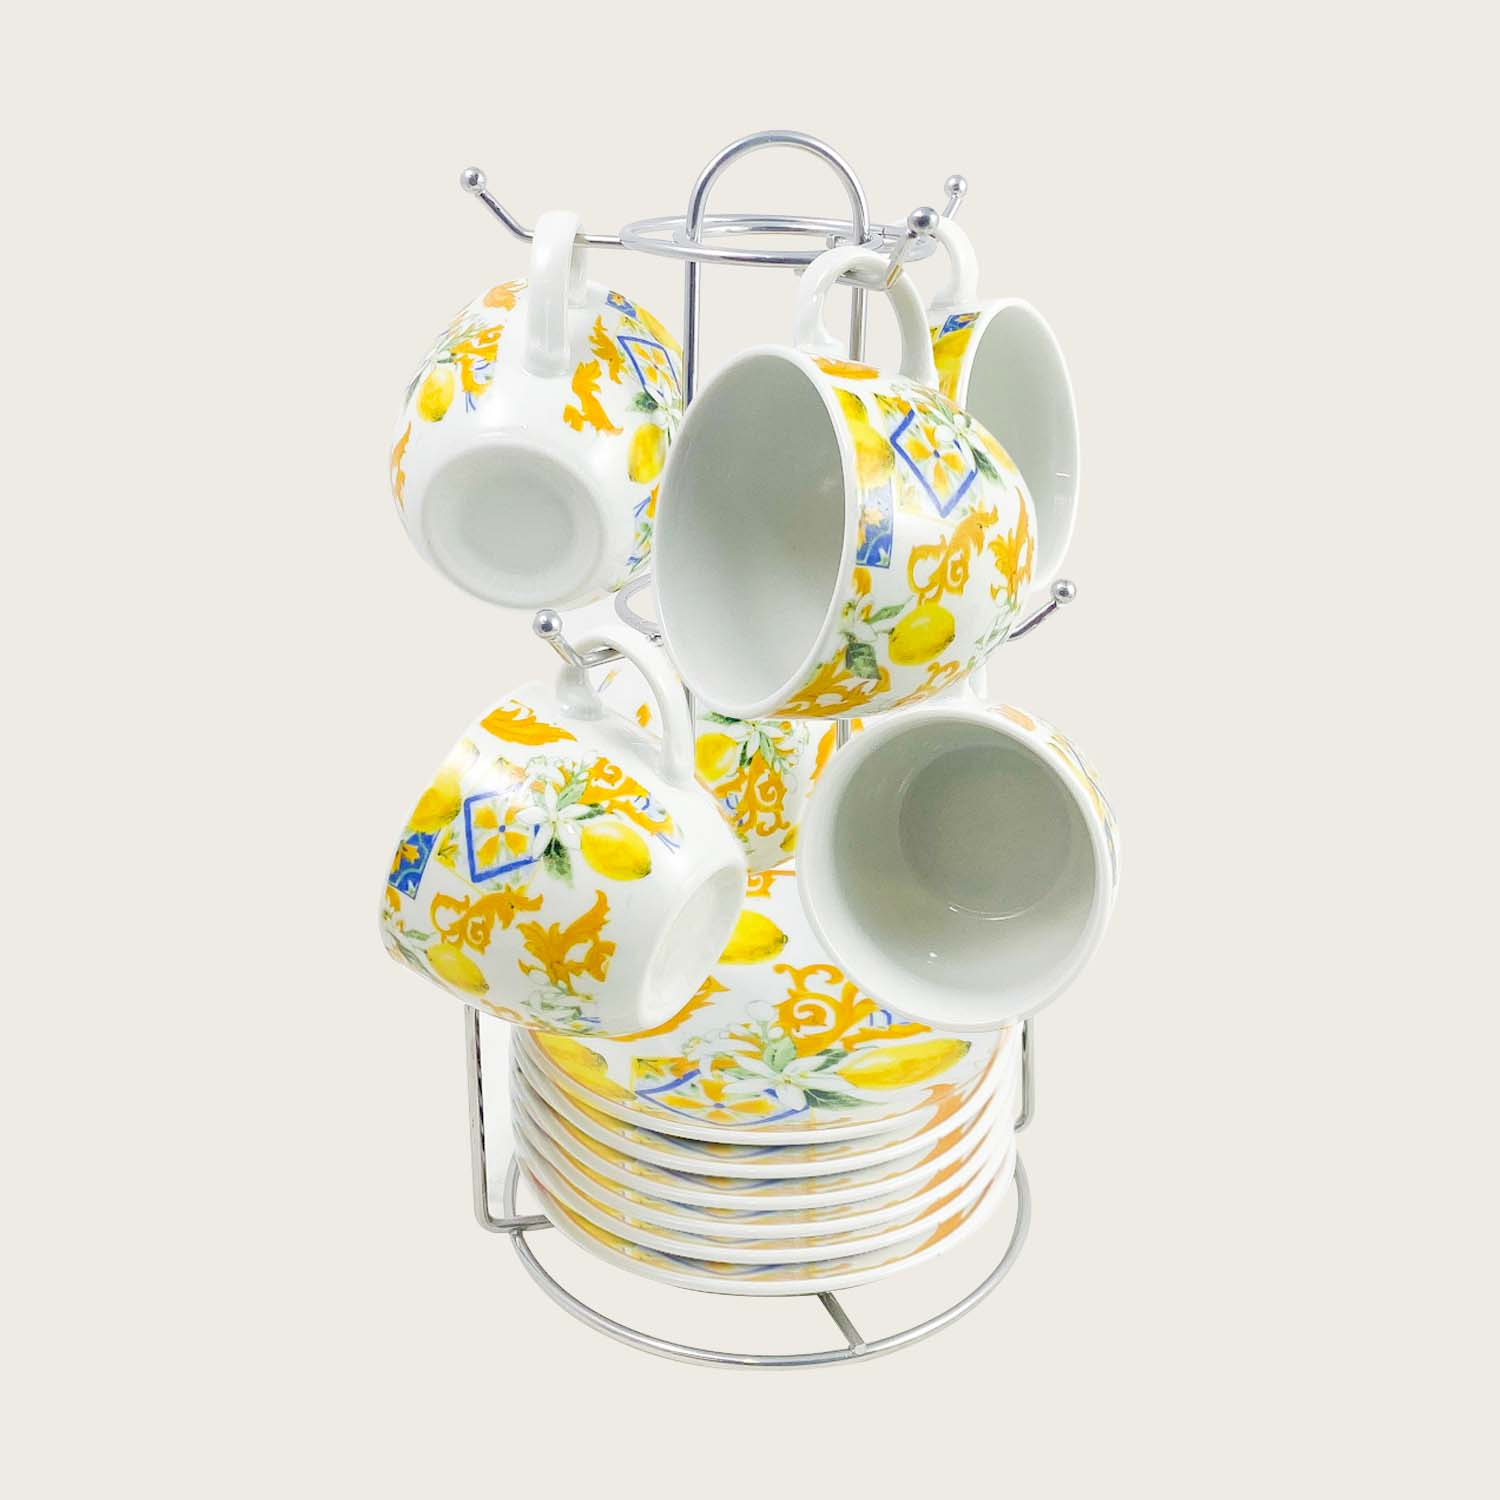 SET 6 TAZZE CAFFE' CON PIATTINO ED ESPOSITORE DECORO LEMON